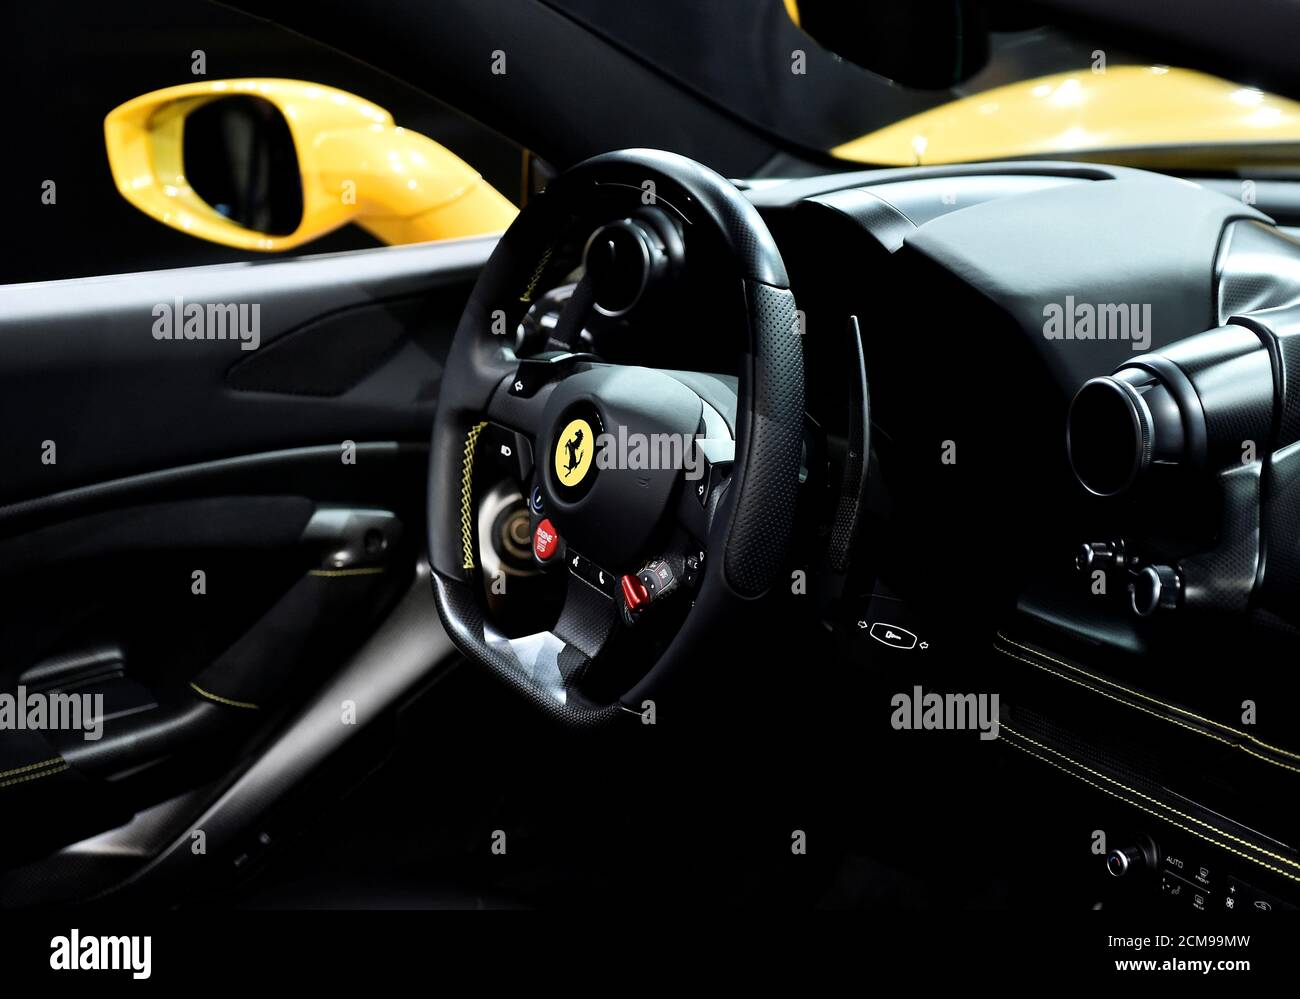 Details Of Interior Of Ferrari F8 Spider Are Pictured As It Is Unveiled During A Presentation Of Two New Ferrari Models At An Event At The Company S Headquarters In Maranello Italy September